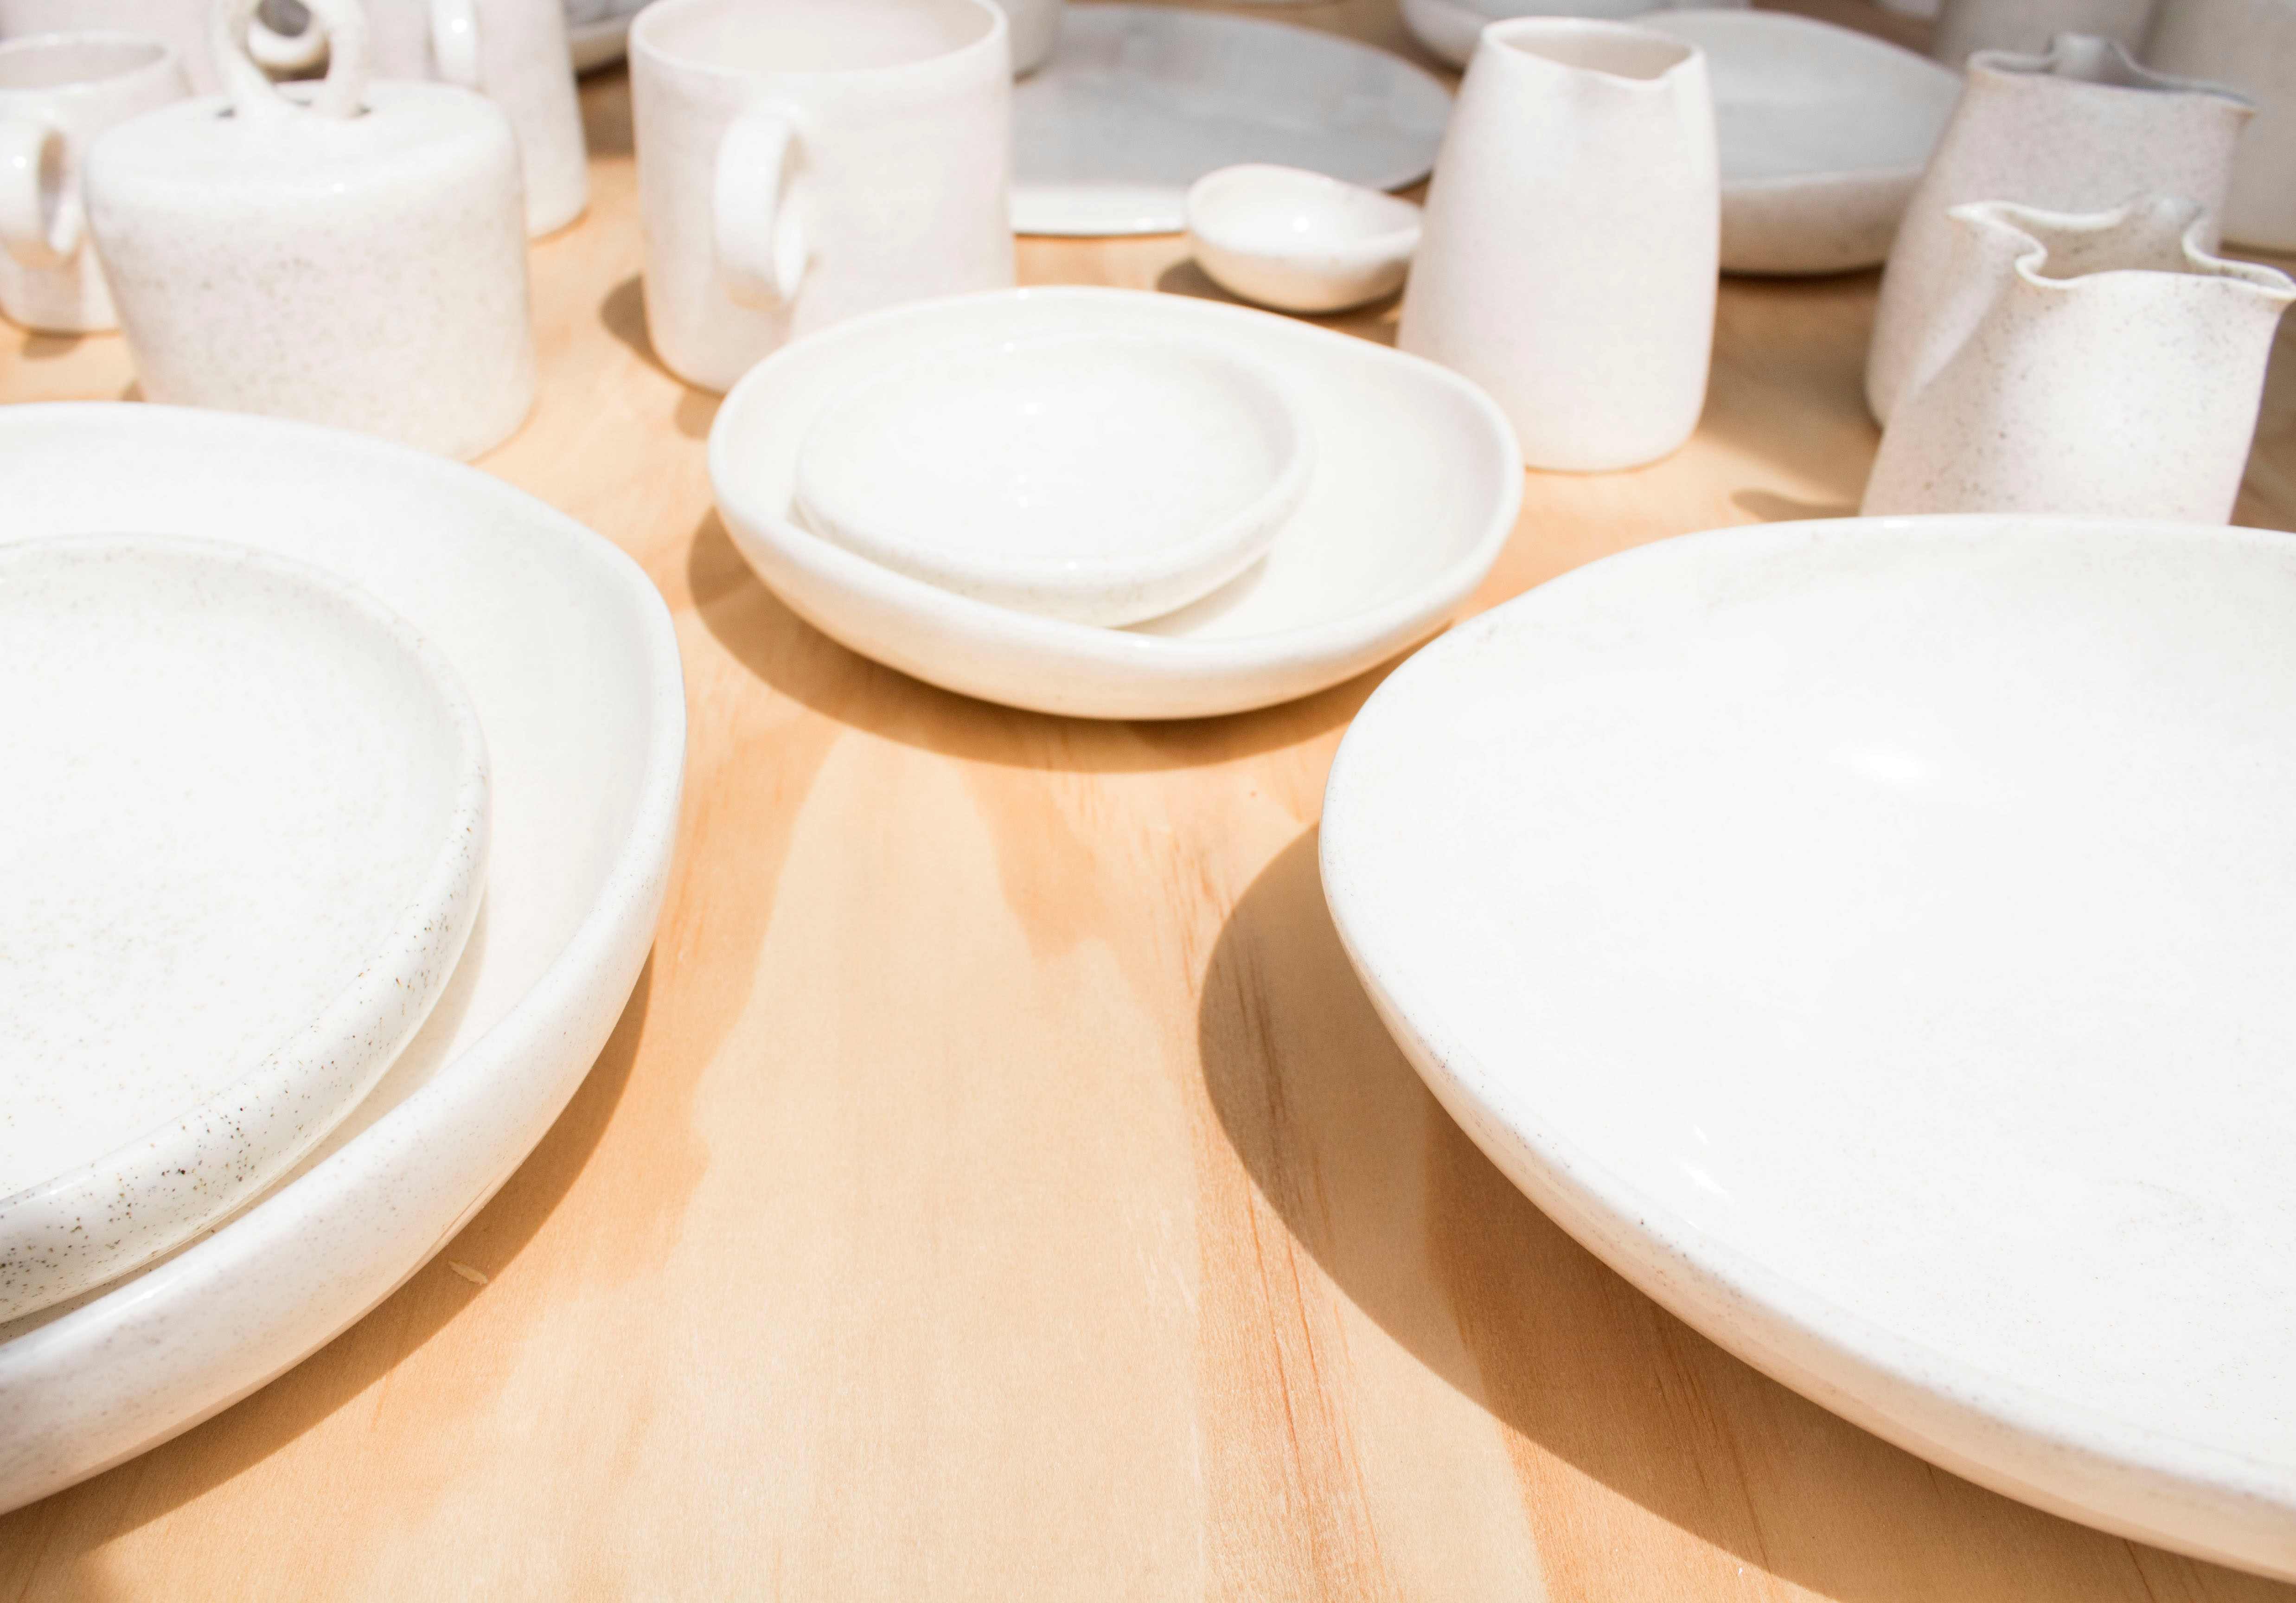 decorative white plates